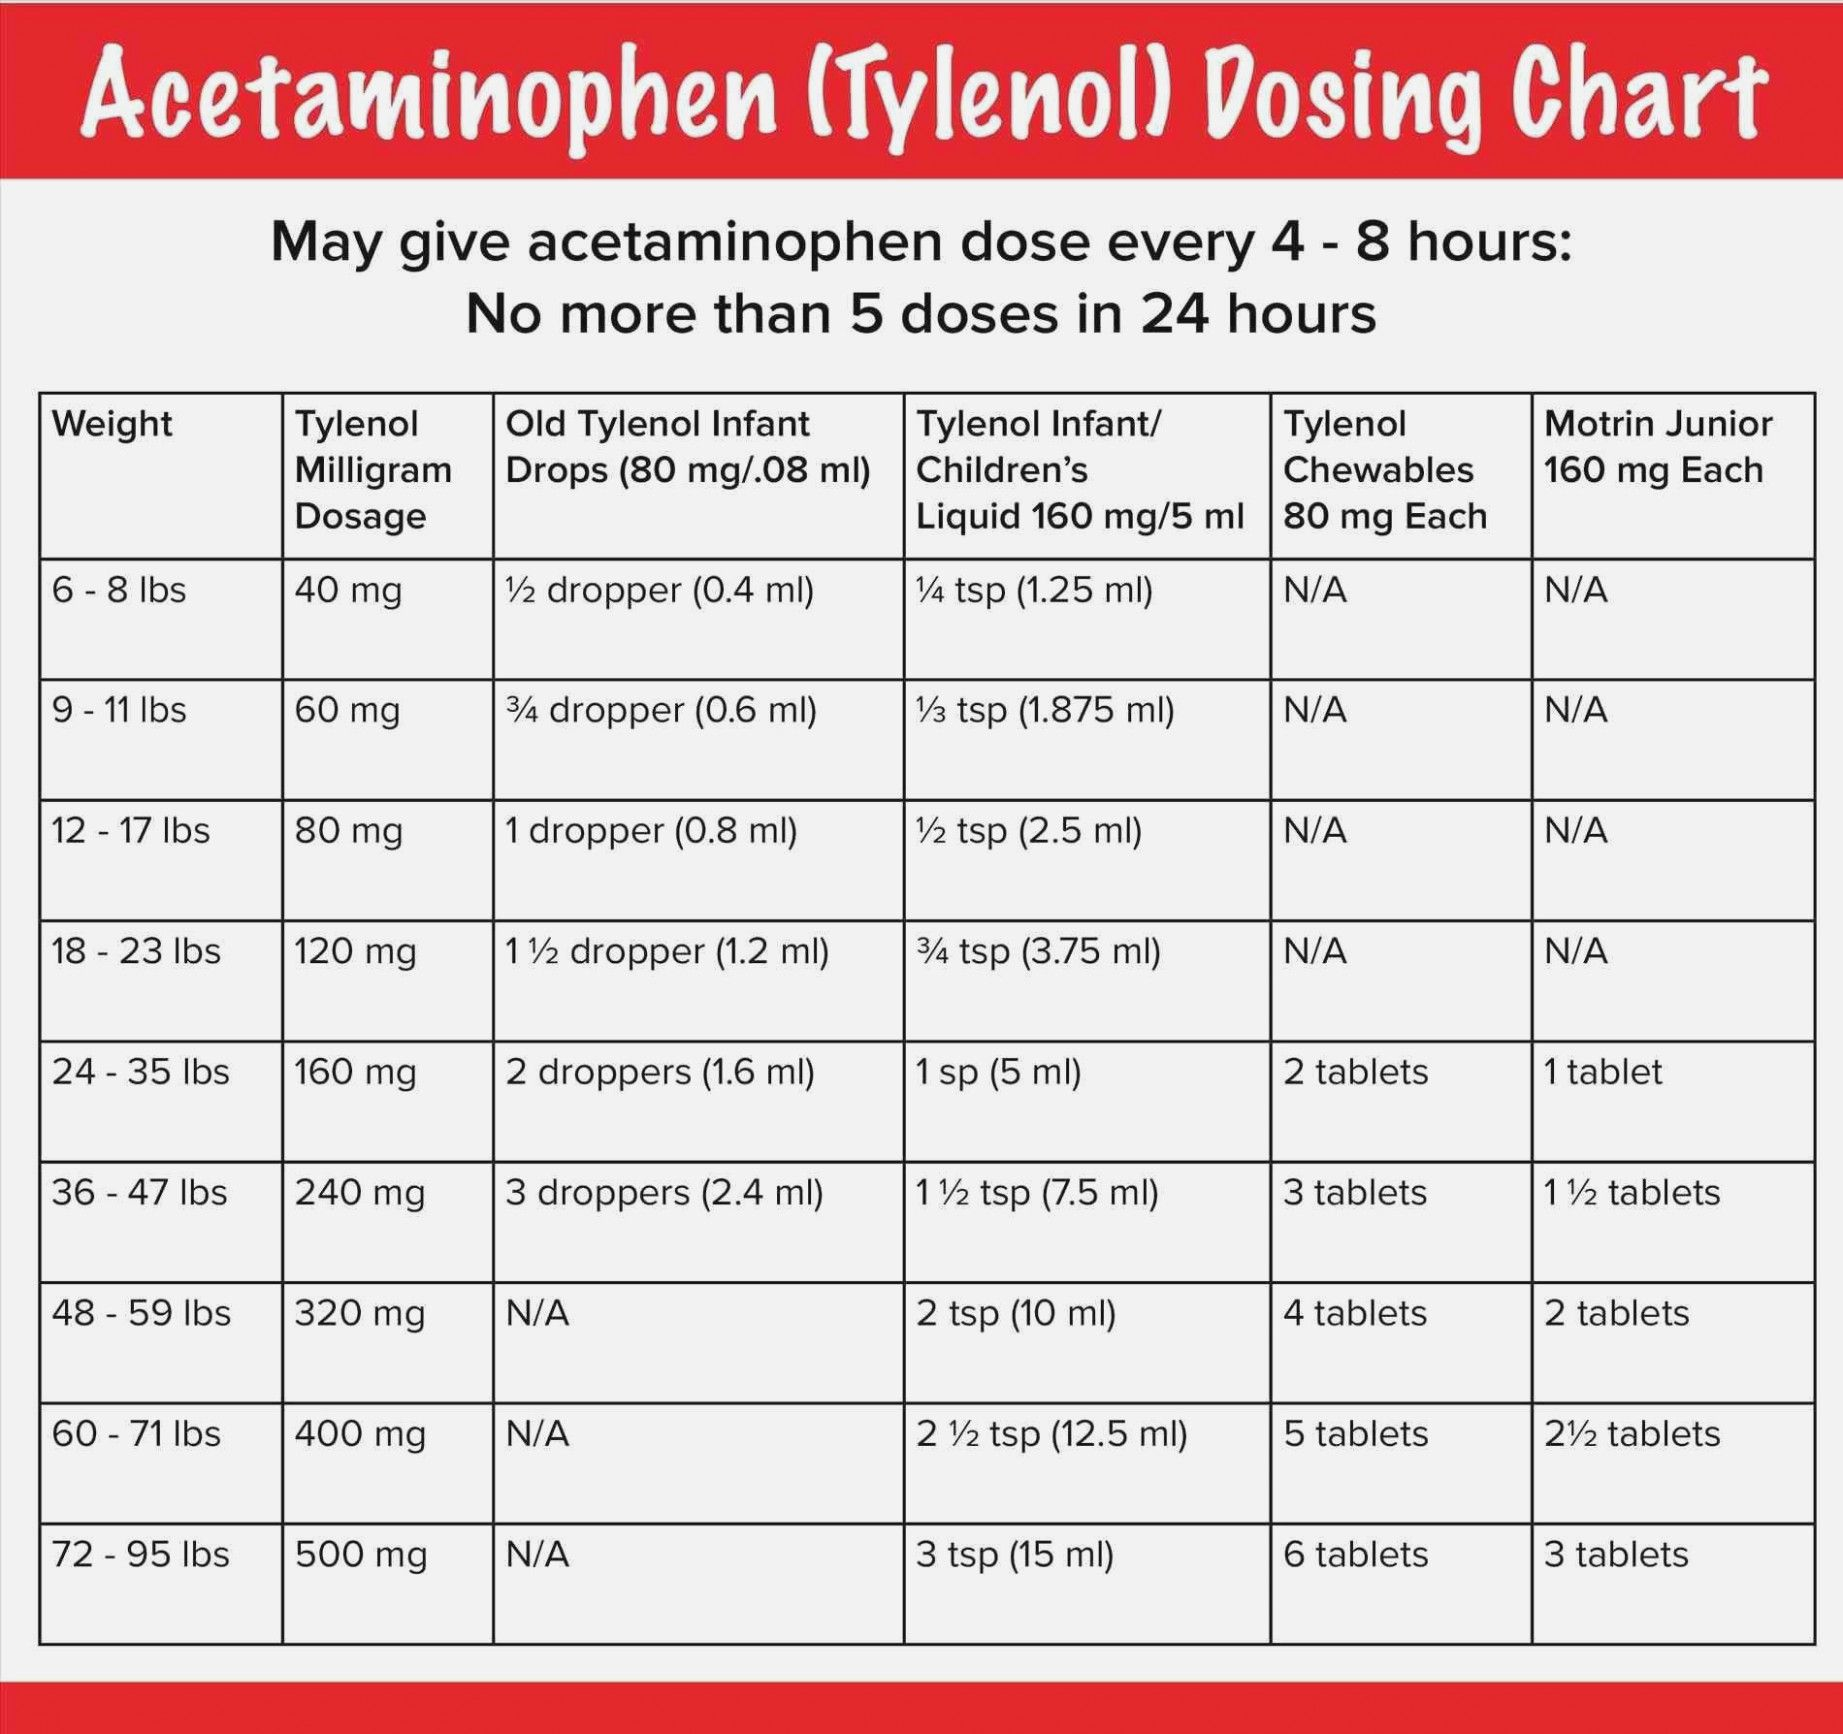 How Much Tylenol For Infant Fever Dosage Chart Tylenol Dosage 23 Lbs Tylenol Doses Chart Baby T Tylenol Dosage Infant Tylenol Dosage Chart Tylenol Dosage Chart